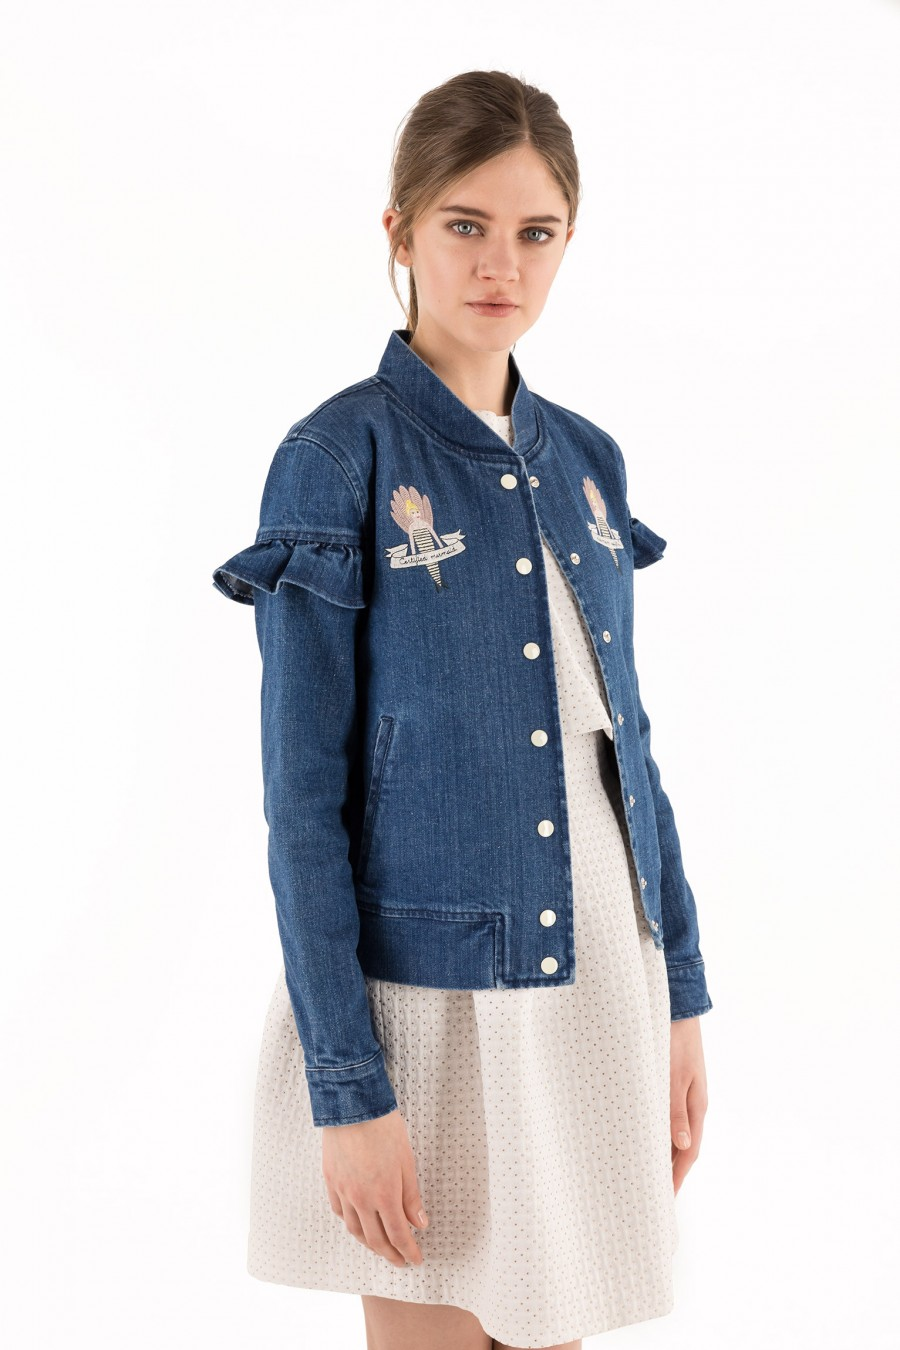 Jeans jacket with embroidered mermaids